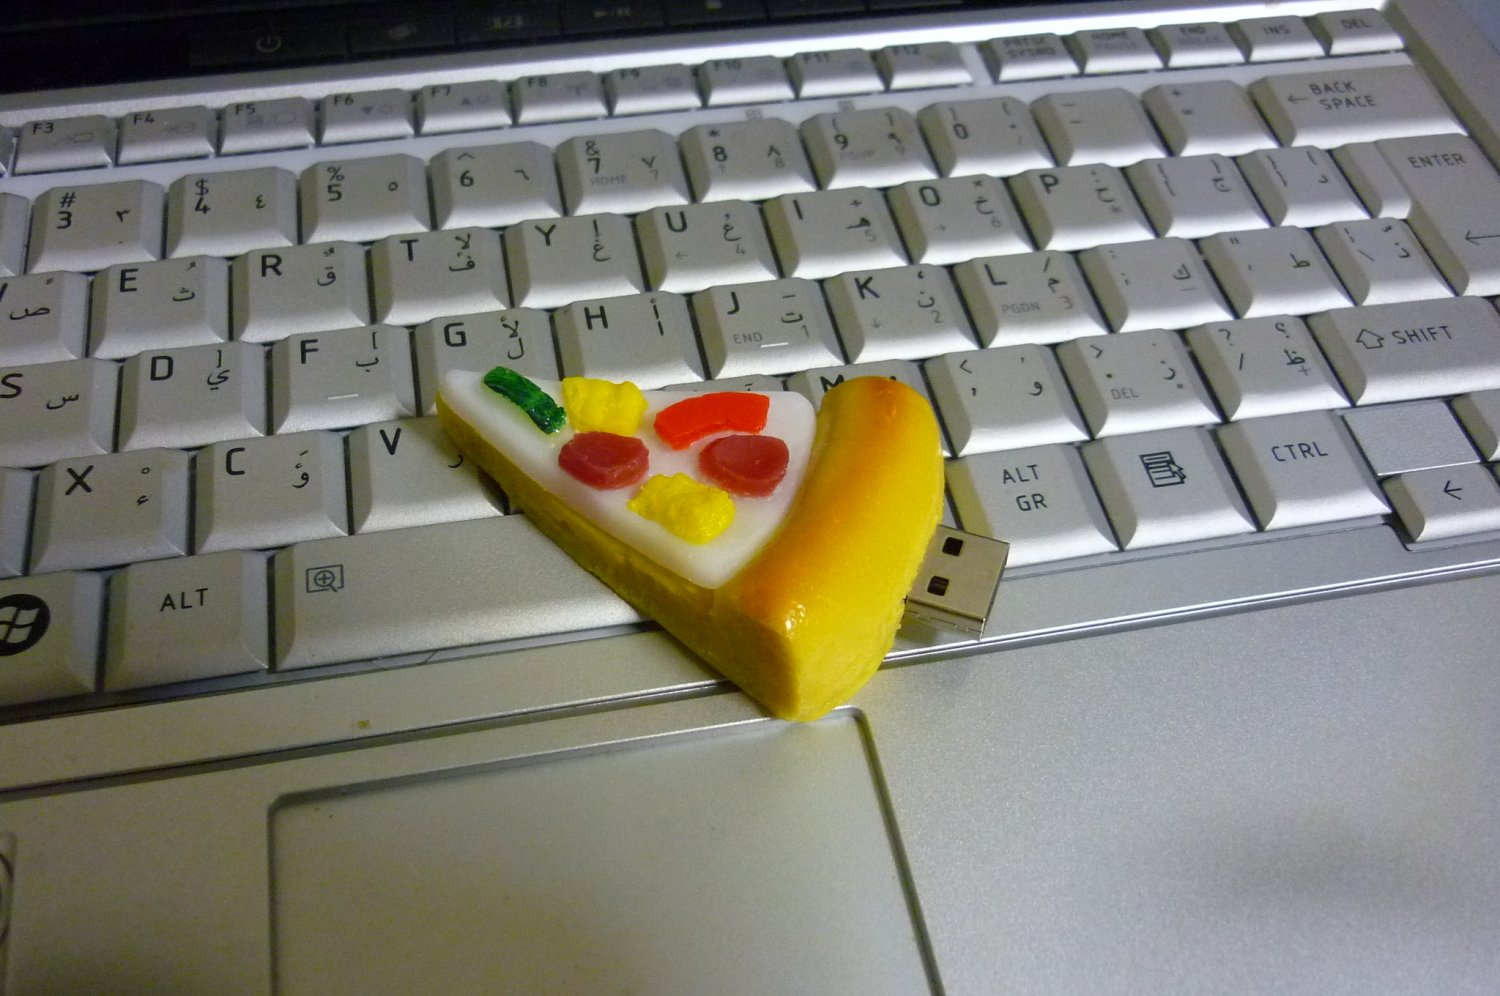 4GB CUTE PIZZA Flash Memory Stick Thumb Drive